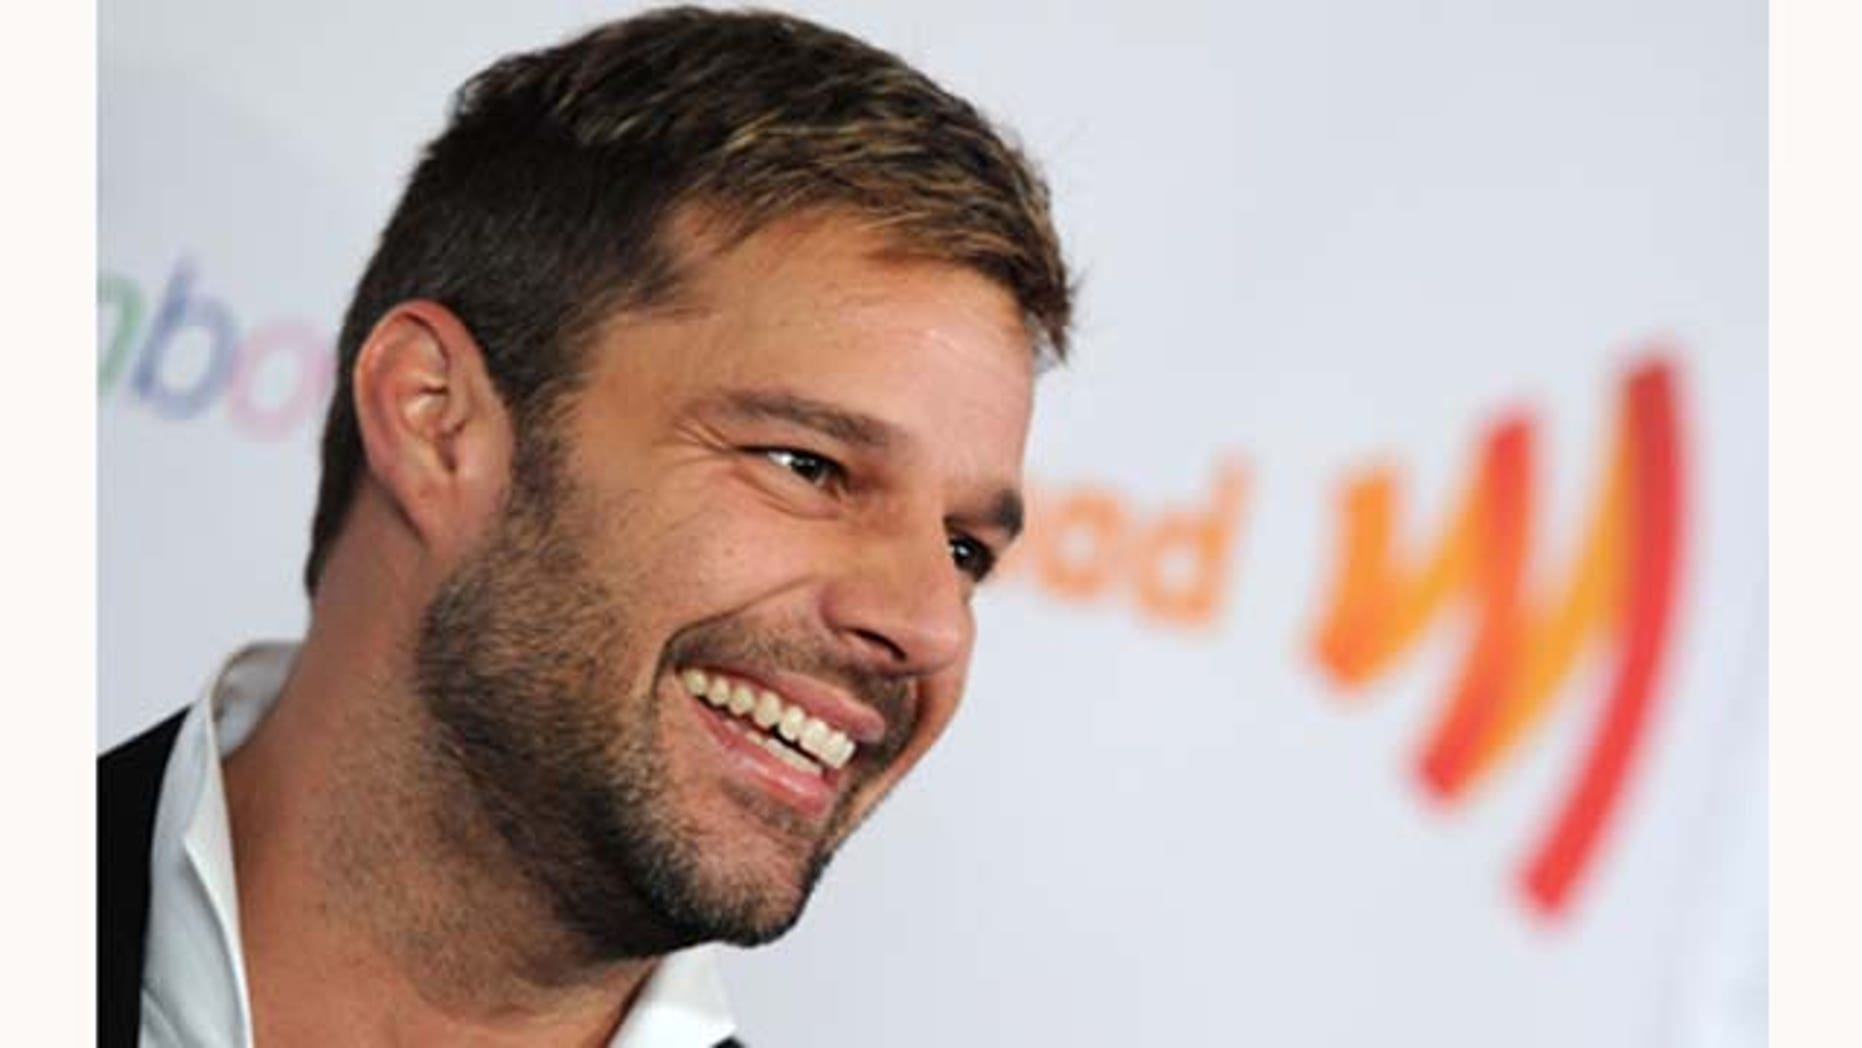 March 19, 2011: Singer Ricky Martin attends the 22nd Annual GLAAD Media Awards at The New York Marriott Marquis in New York City.